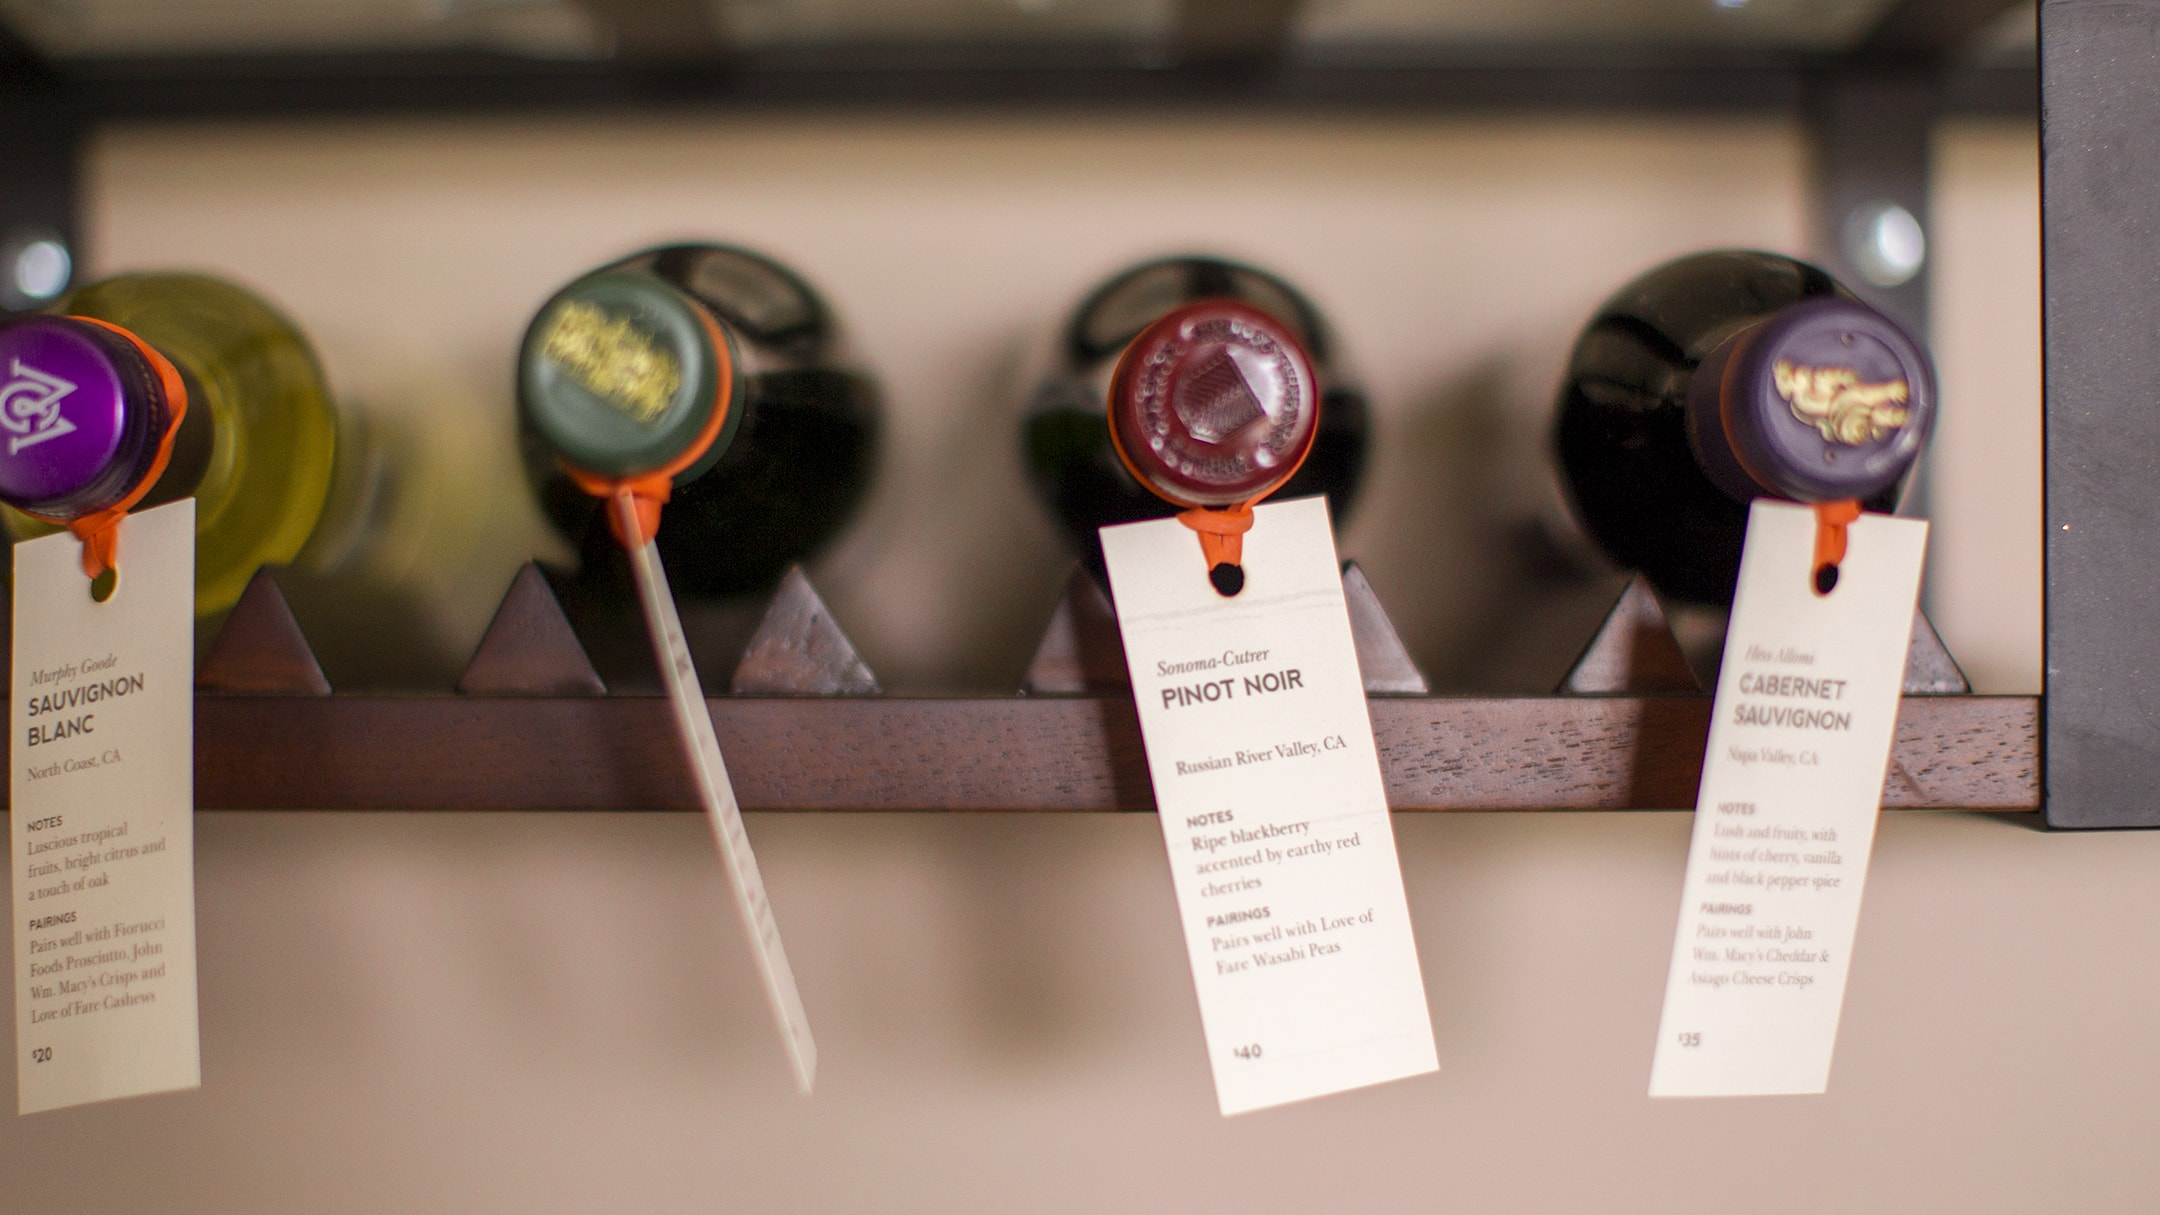 Epicurean Hotel branded wine flights with info tags